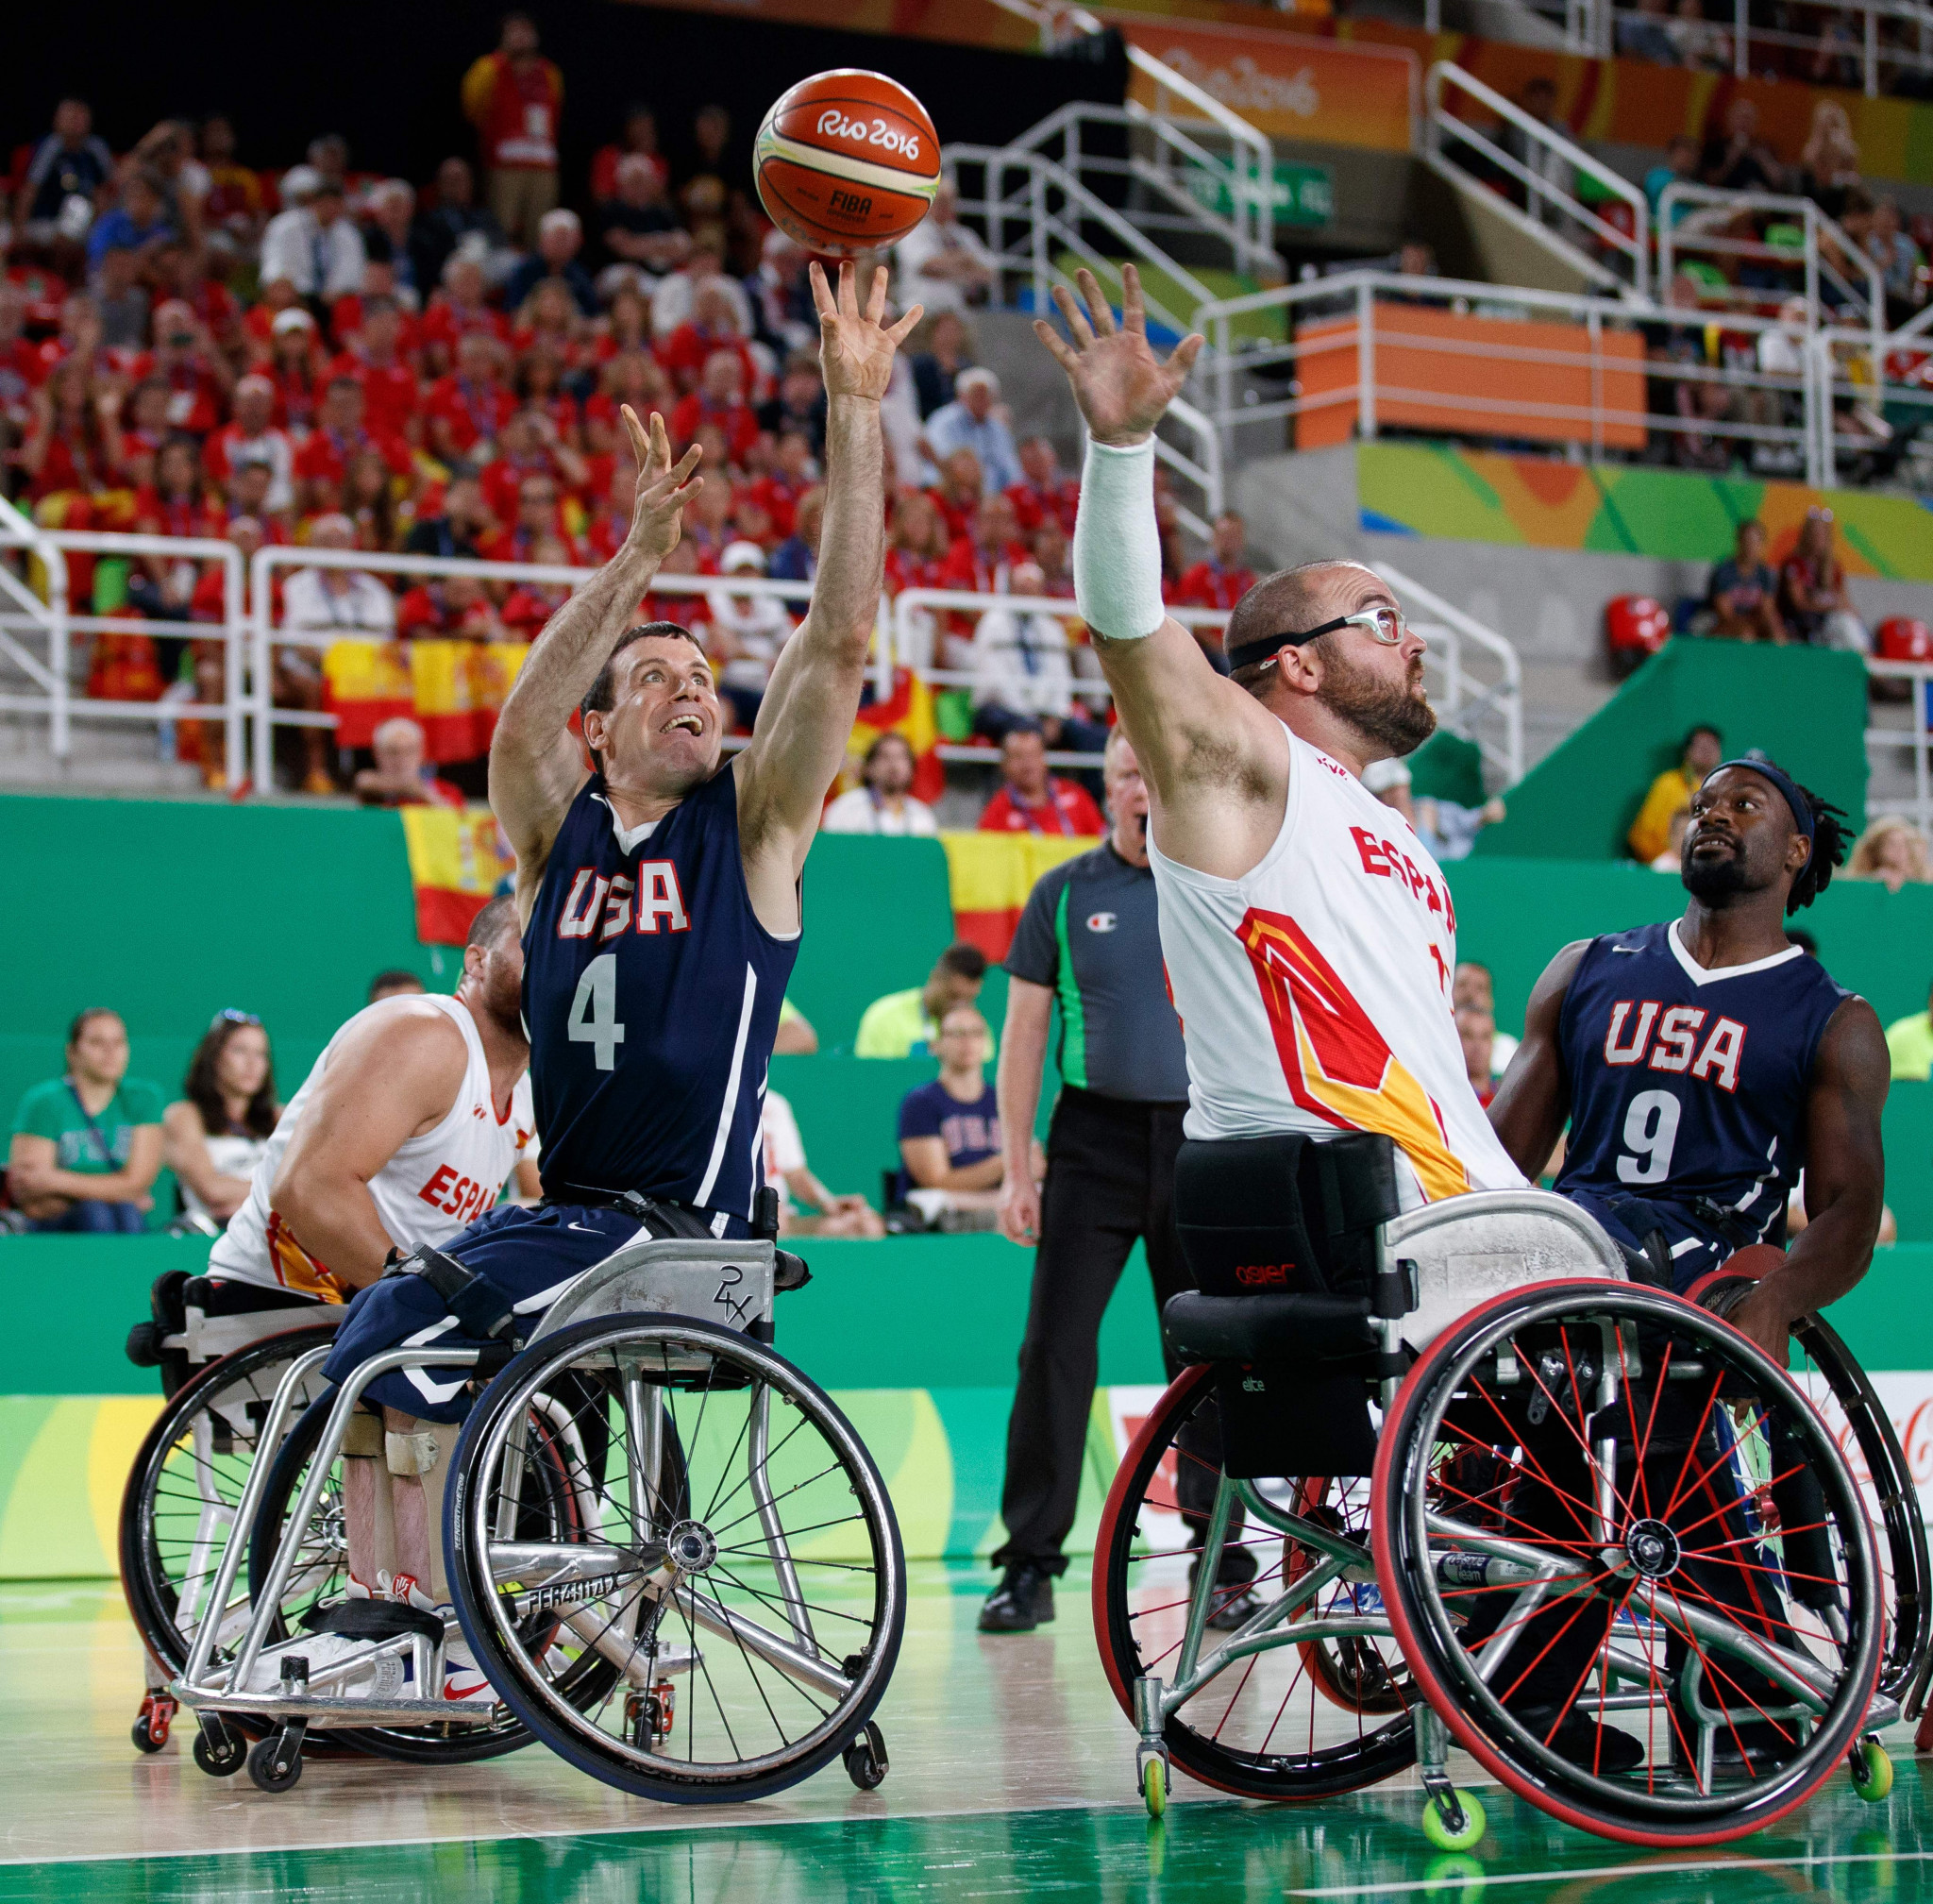 Many wheelchair basketball players could be made ineligible under the new IPC Classification Code ©Getty Images